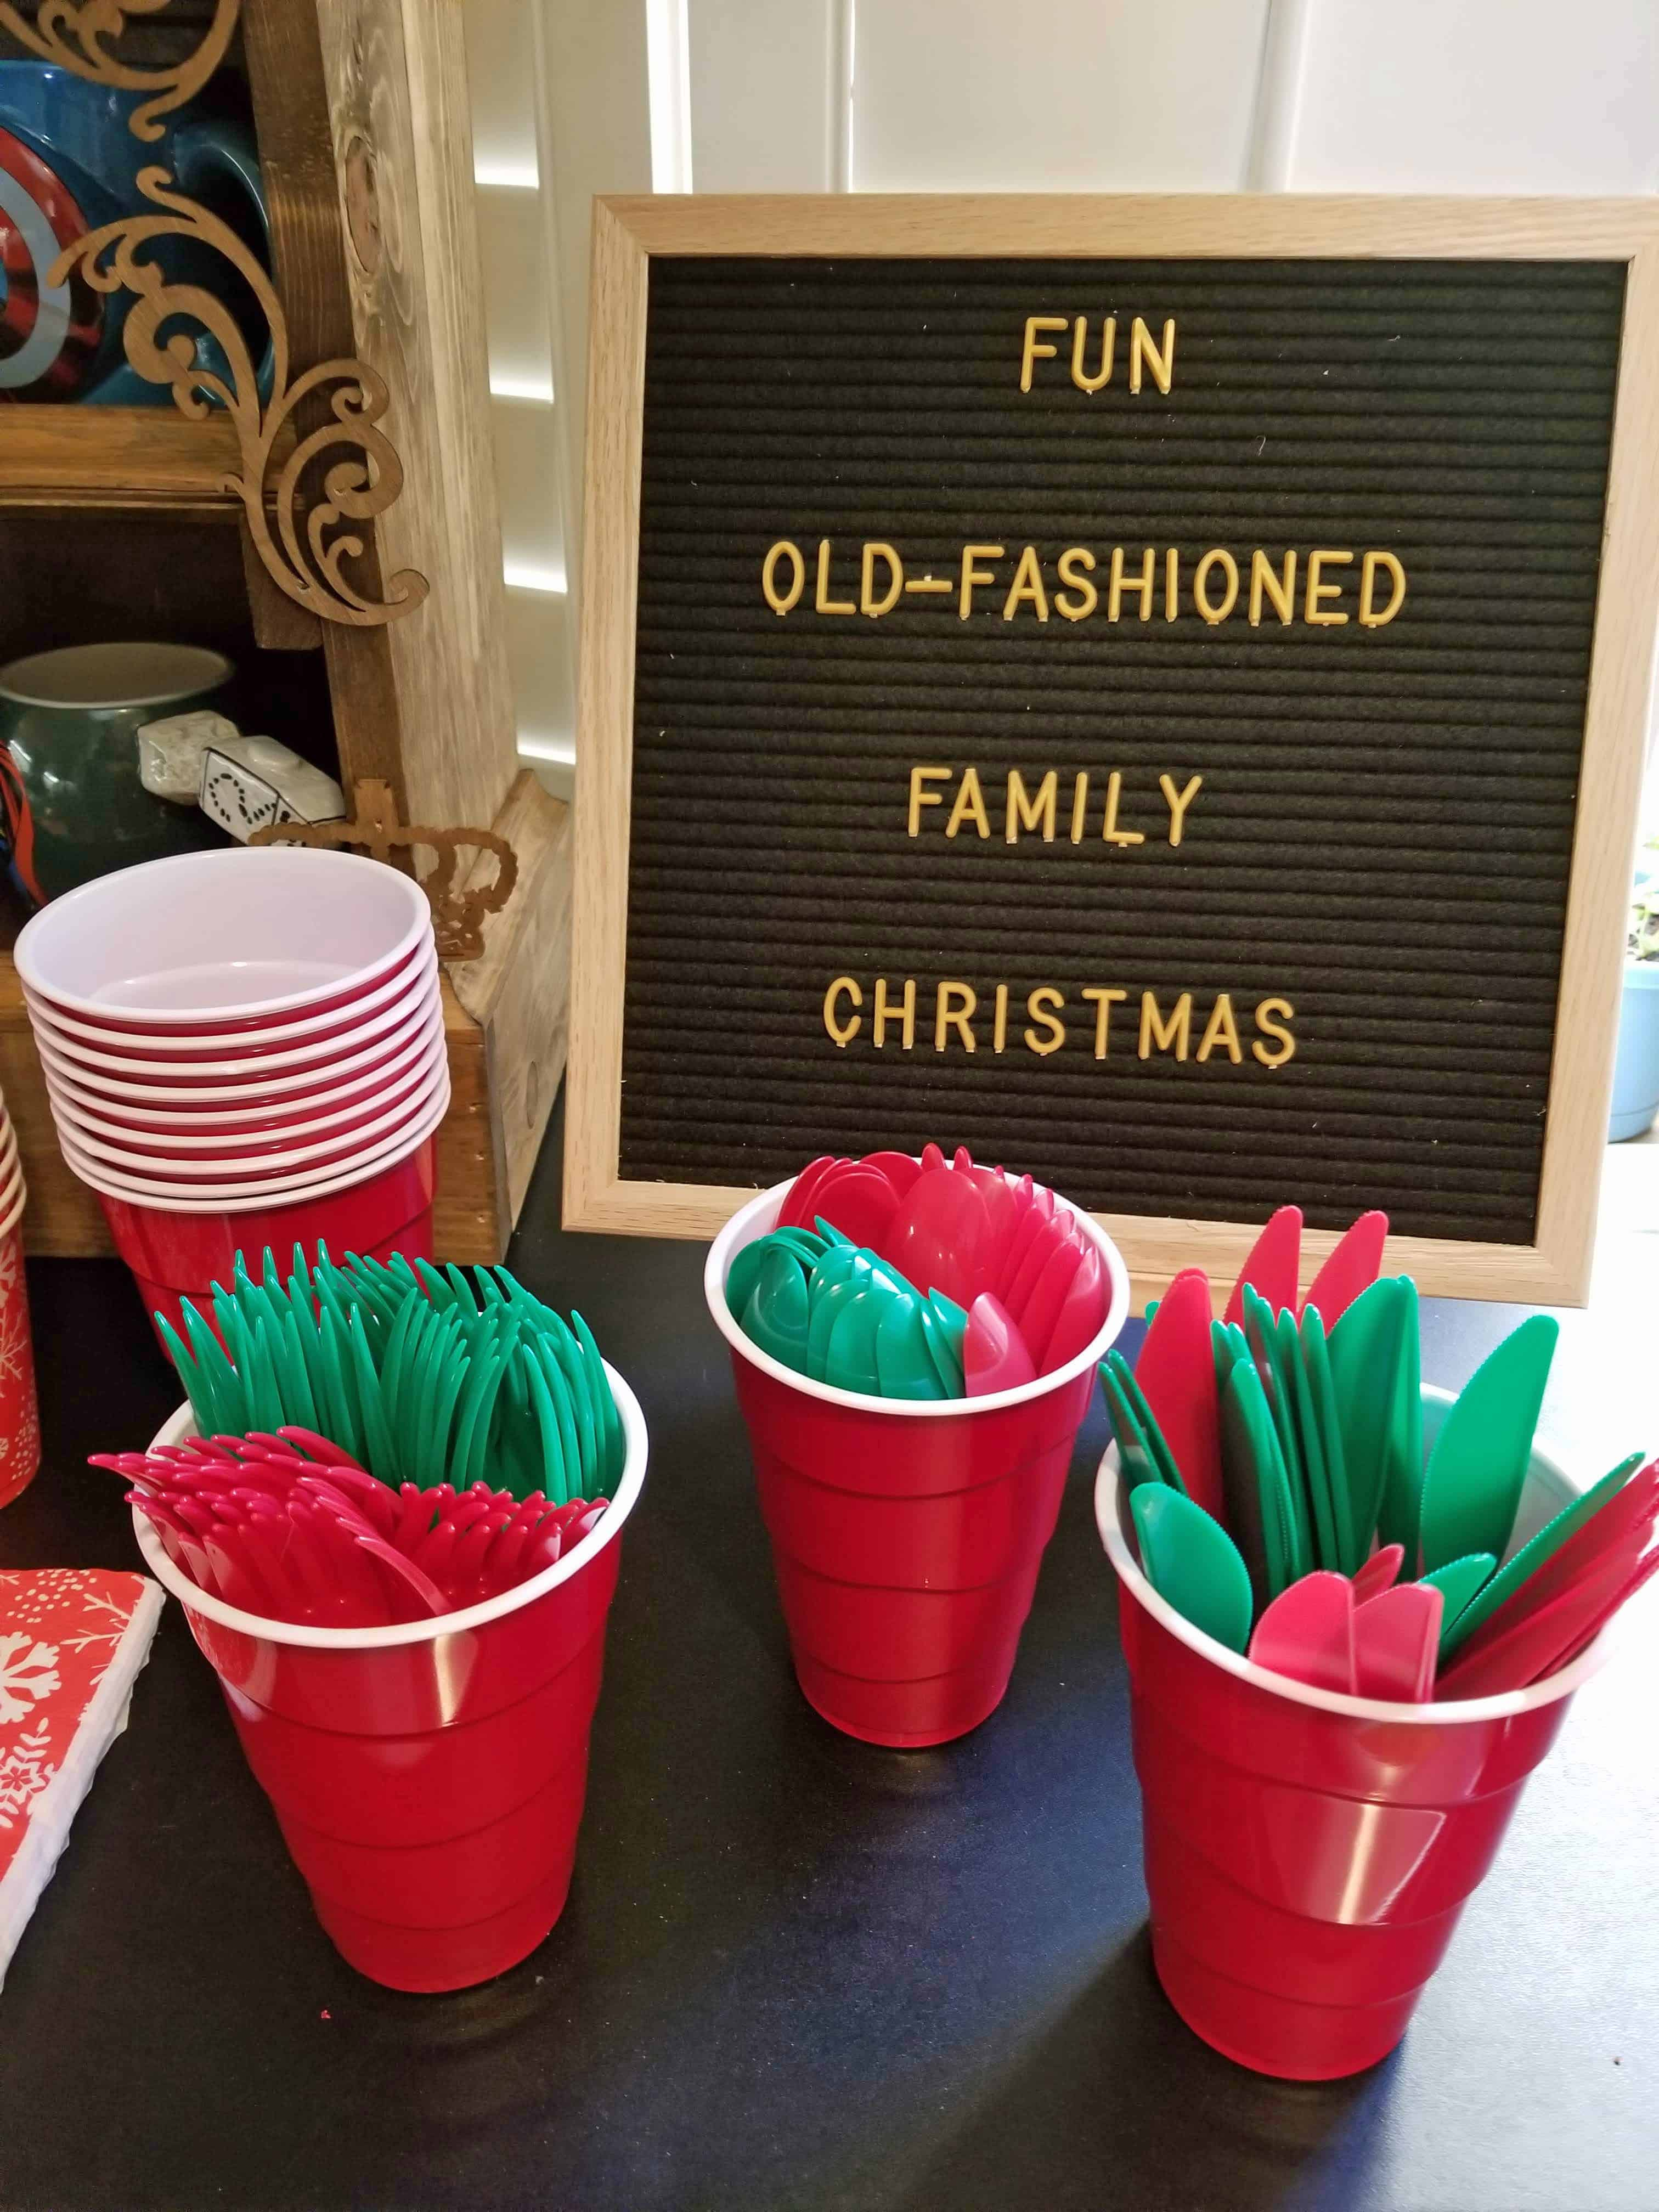 How To Host A Griswold Christmas Party Without Breaking The Bank